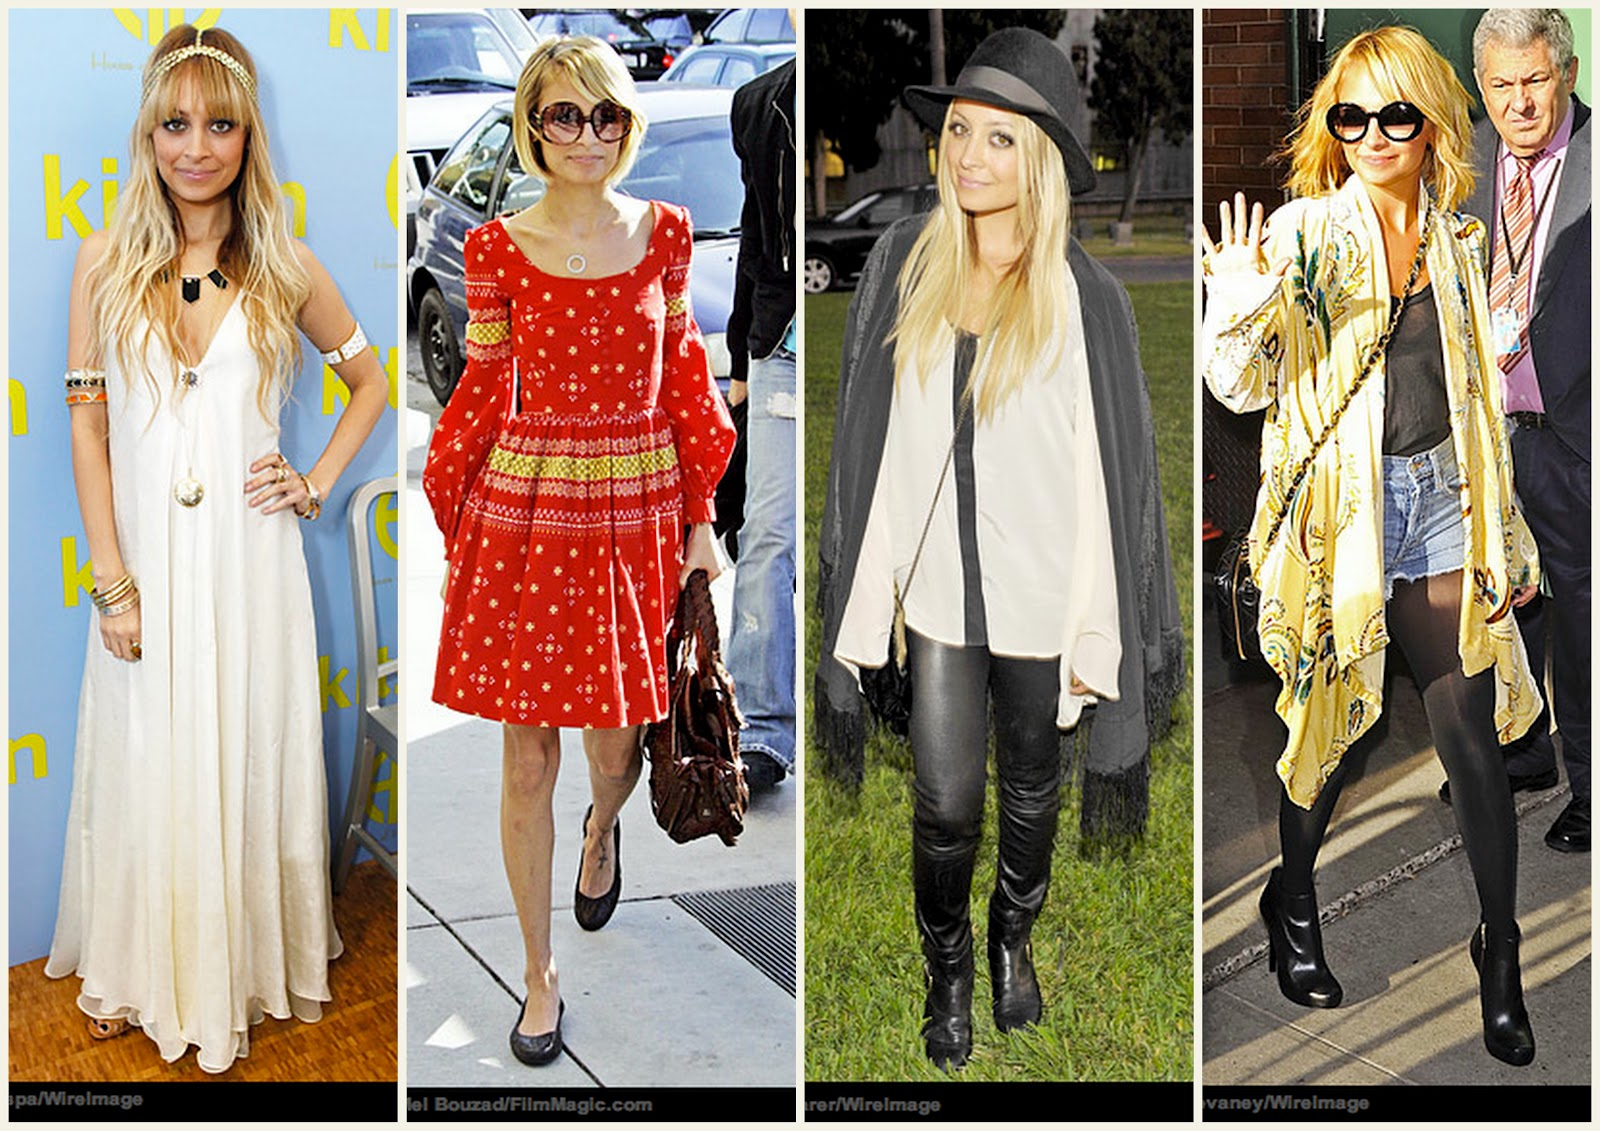 Get The Look: Bohemian Chic Style